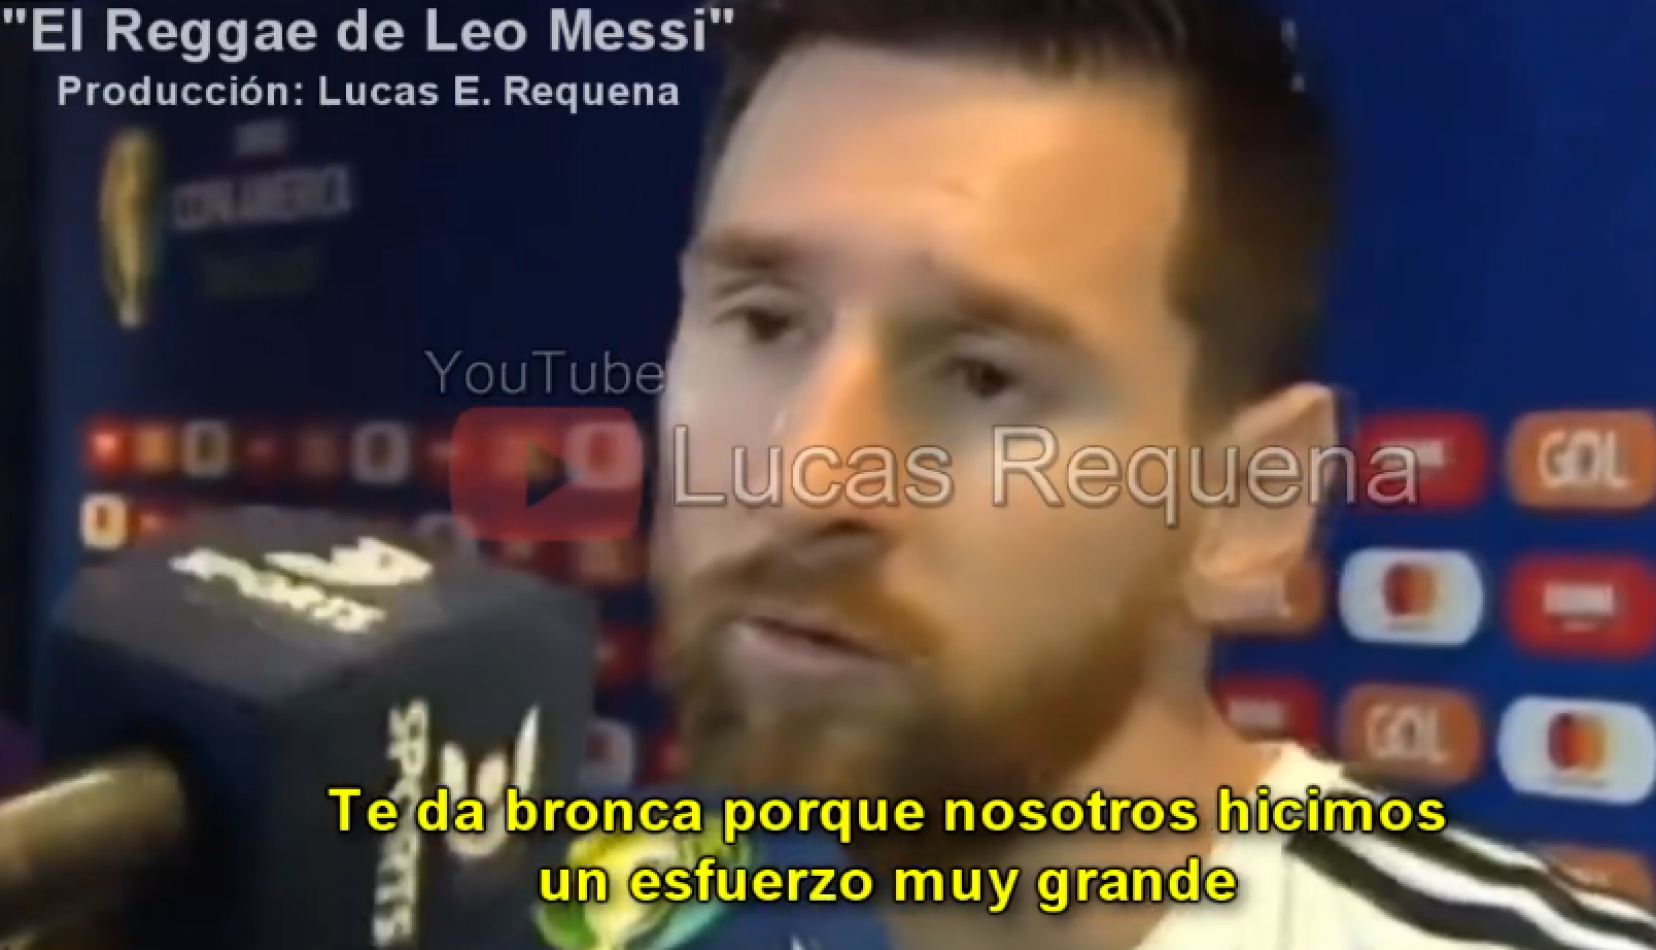 ¡Desopilante! Salió el reggae de Messi. Video